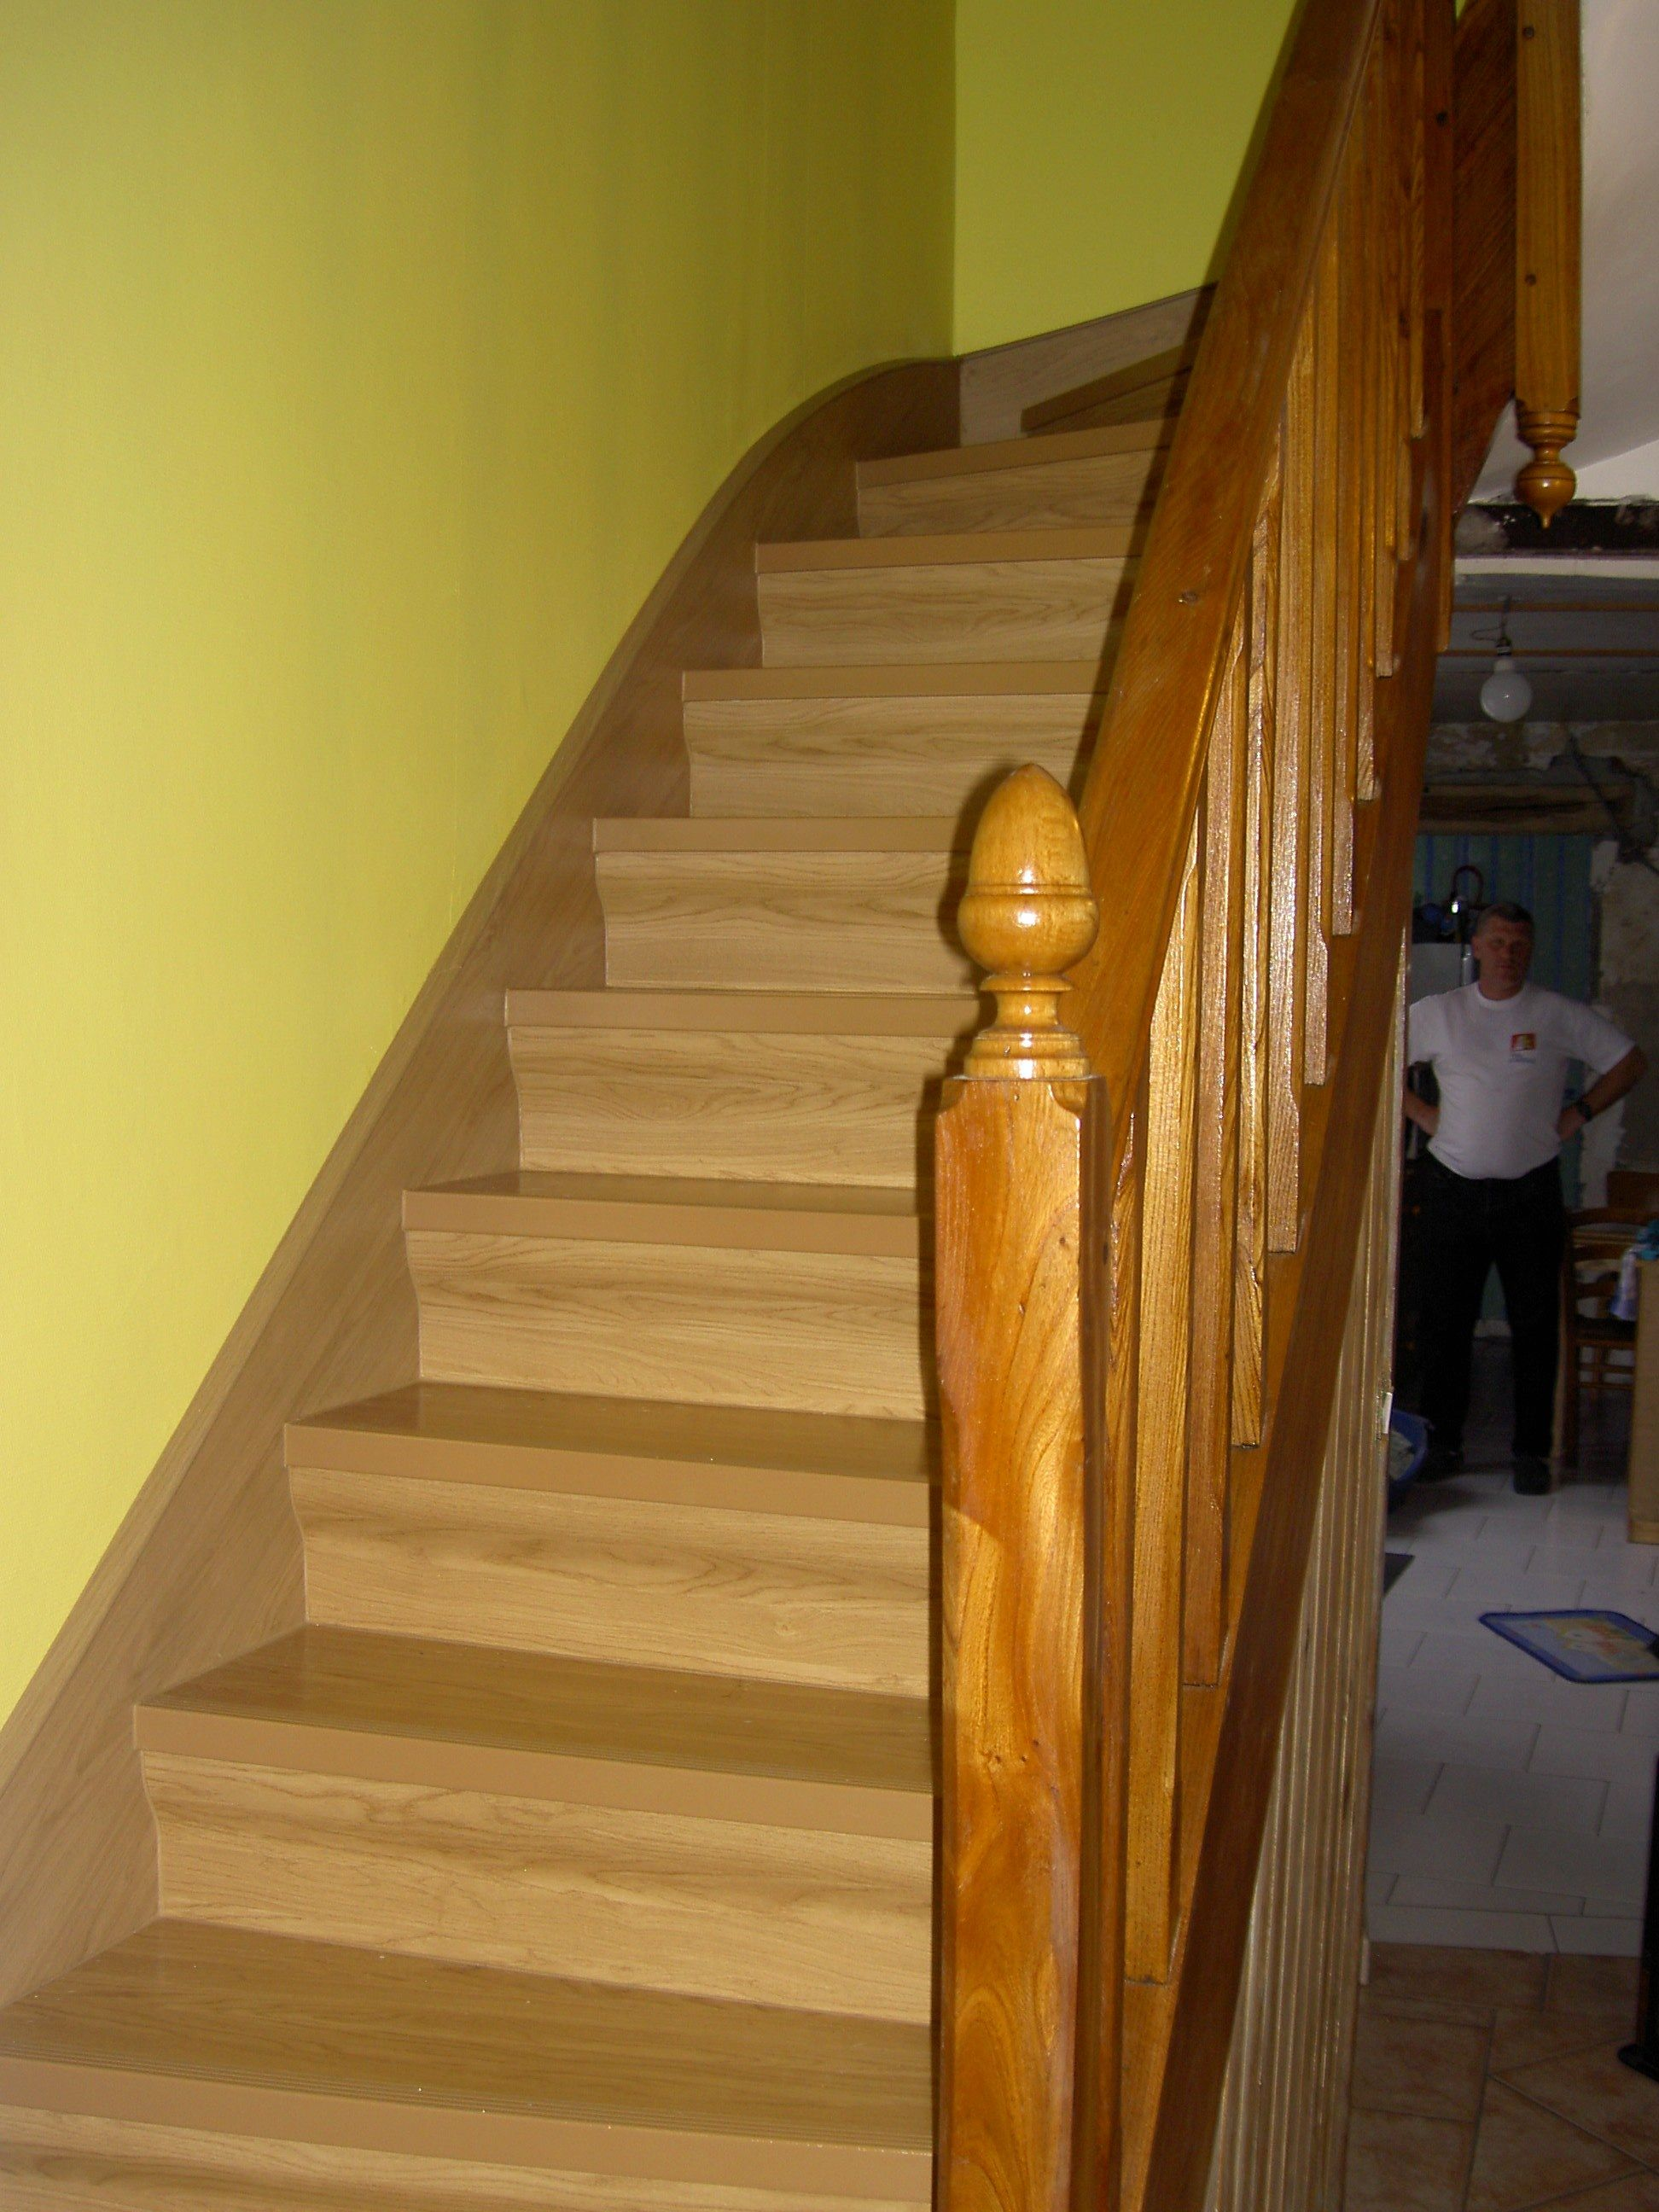 Rnovation d escalier en bois simple rnovation duescalier for Renovation escalier bois interieur